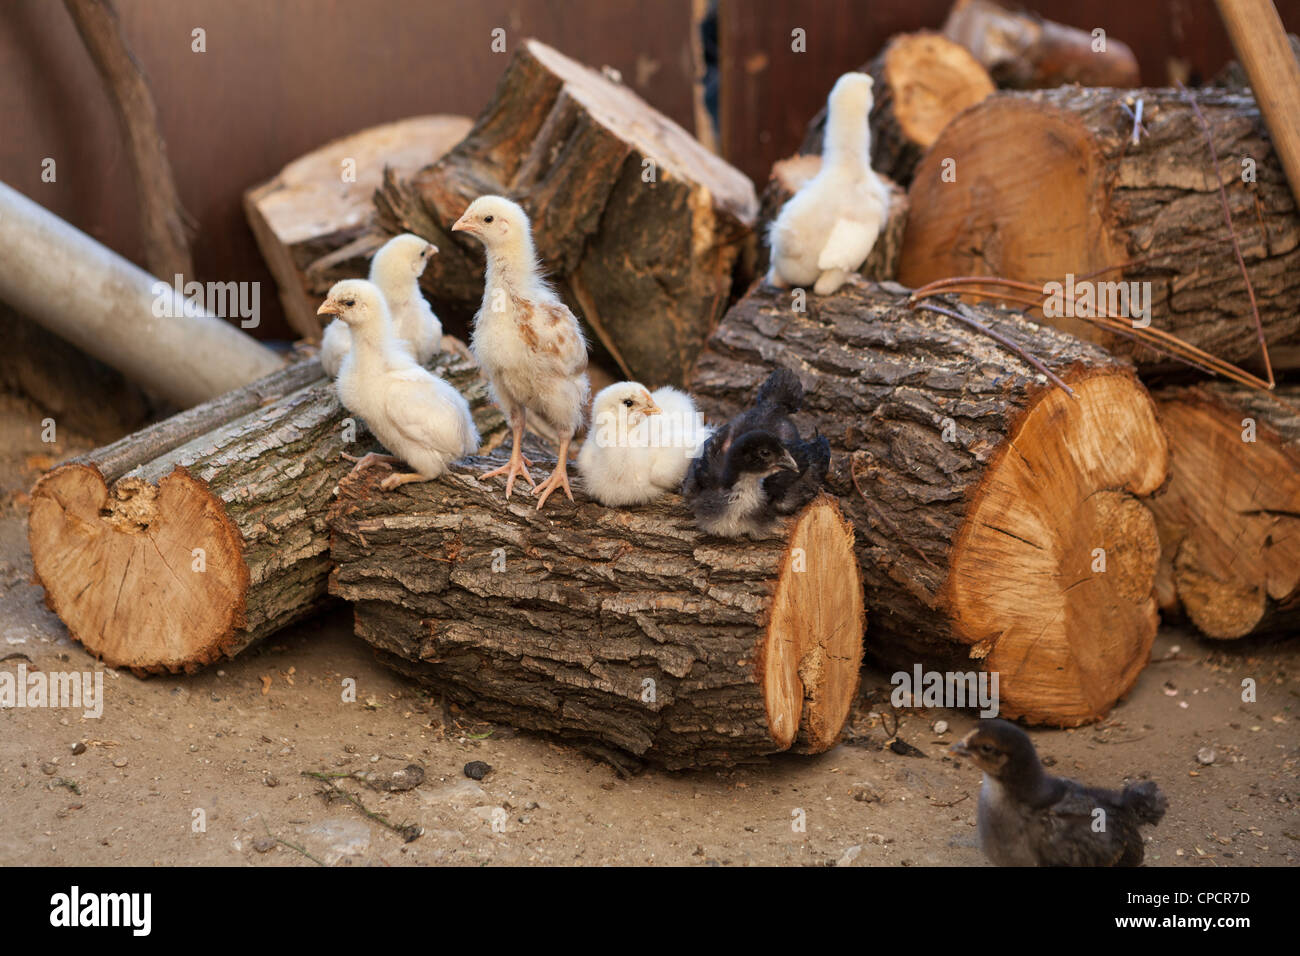 CBaby chicks in a free range chicken farm - Stock Image